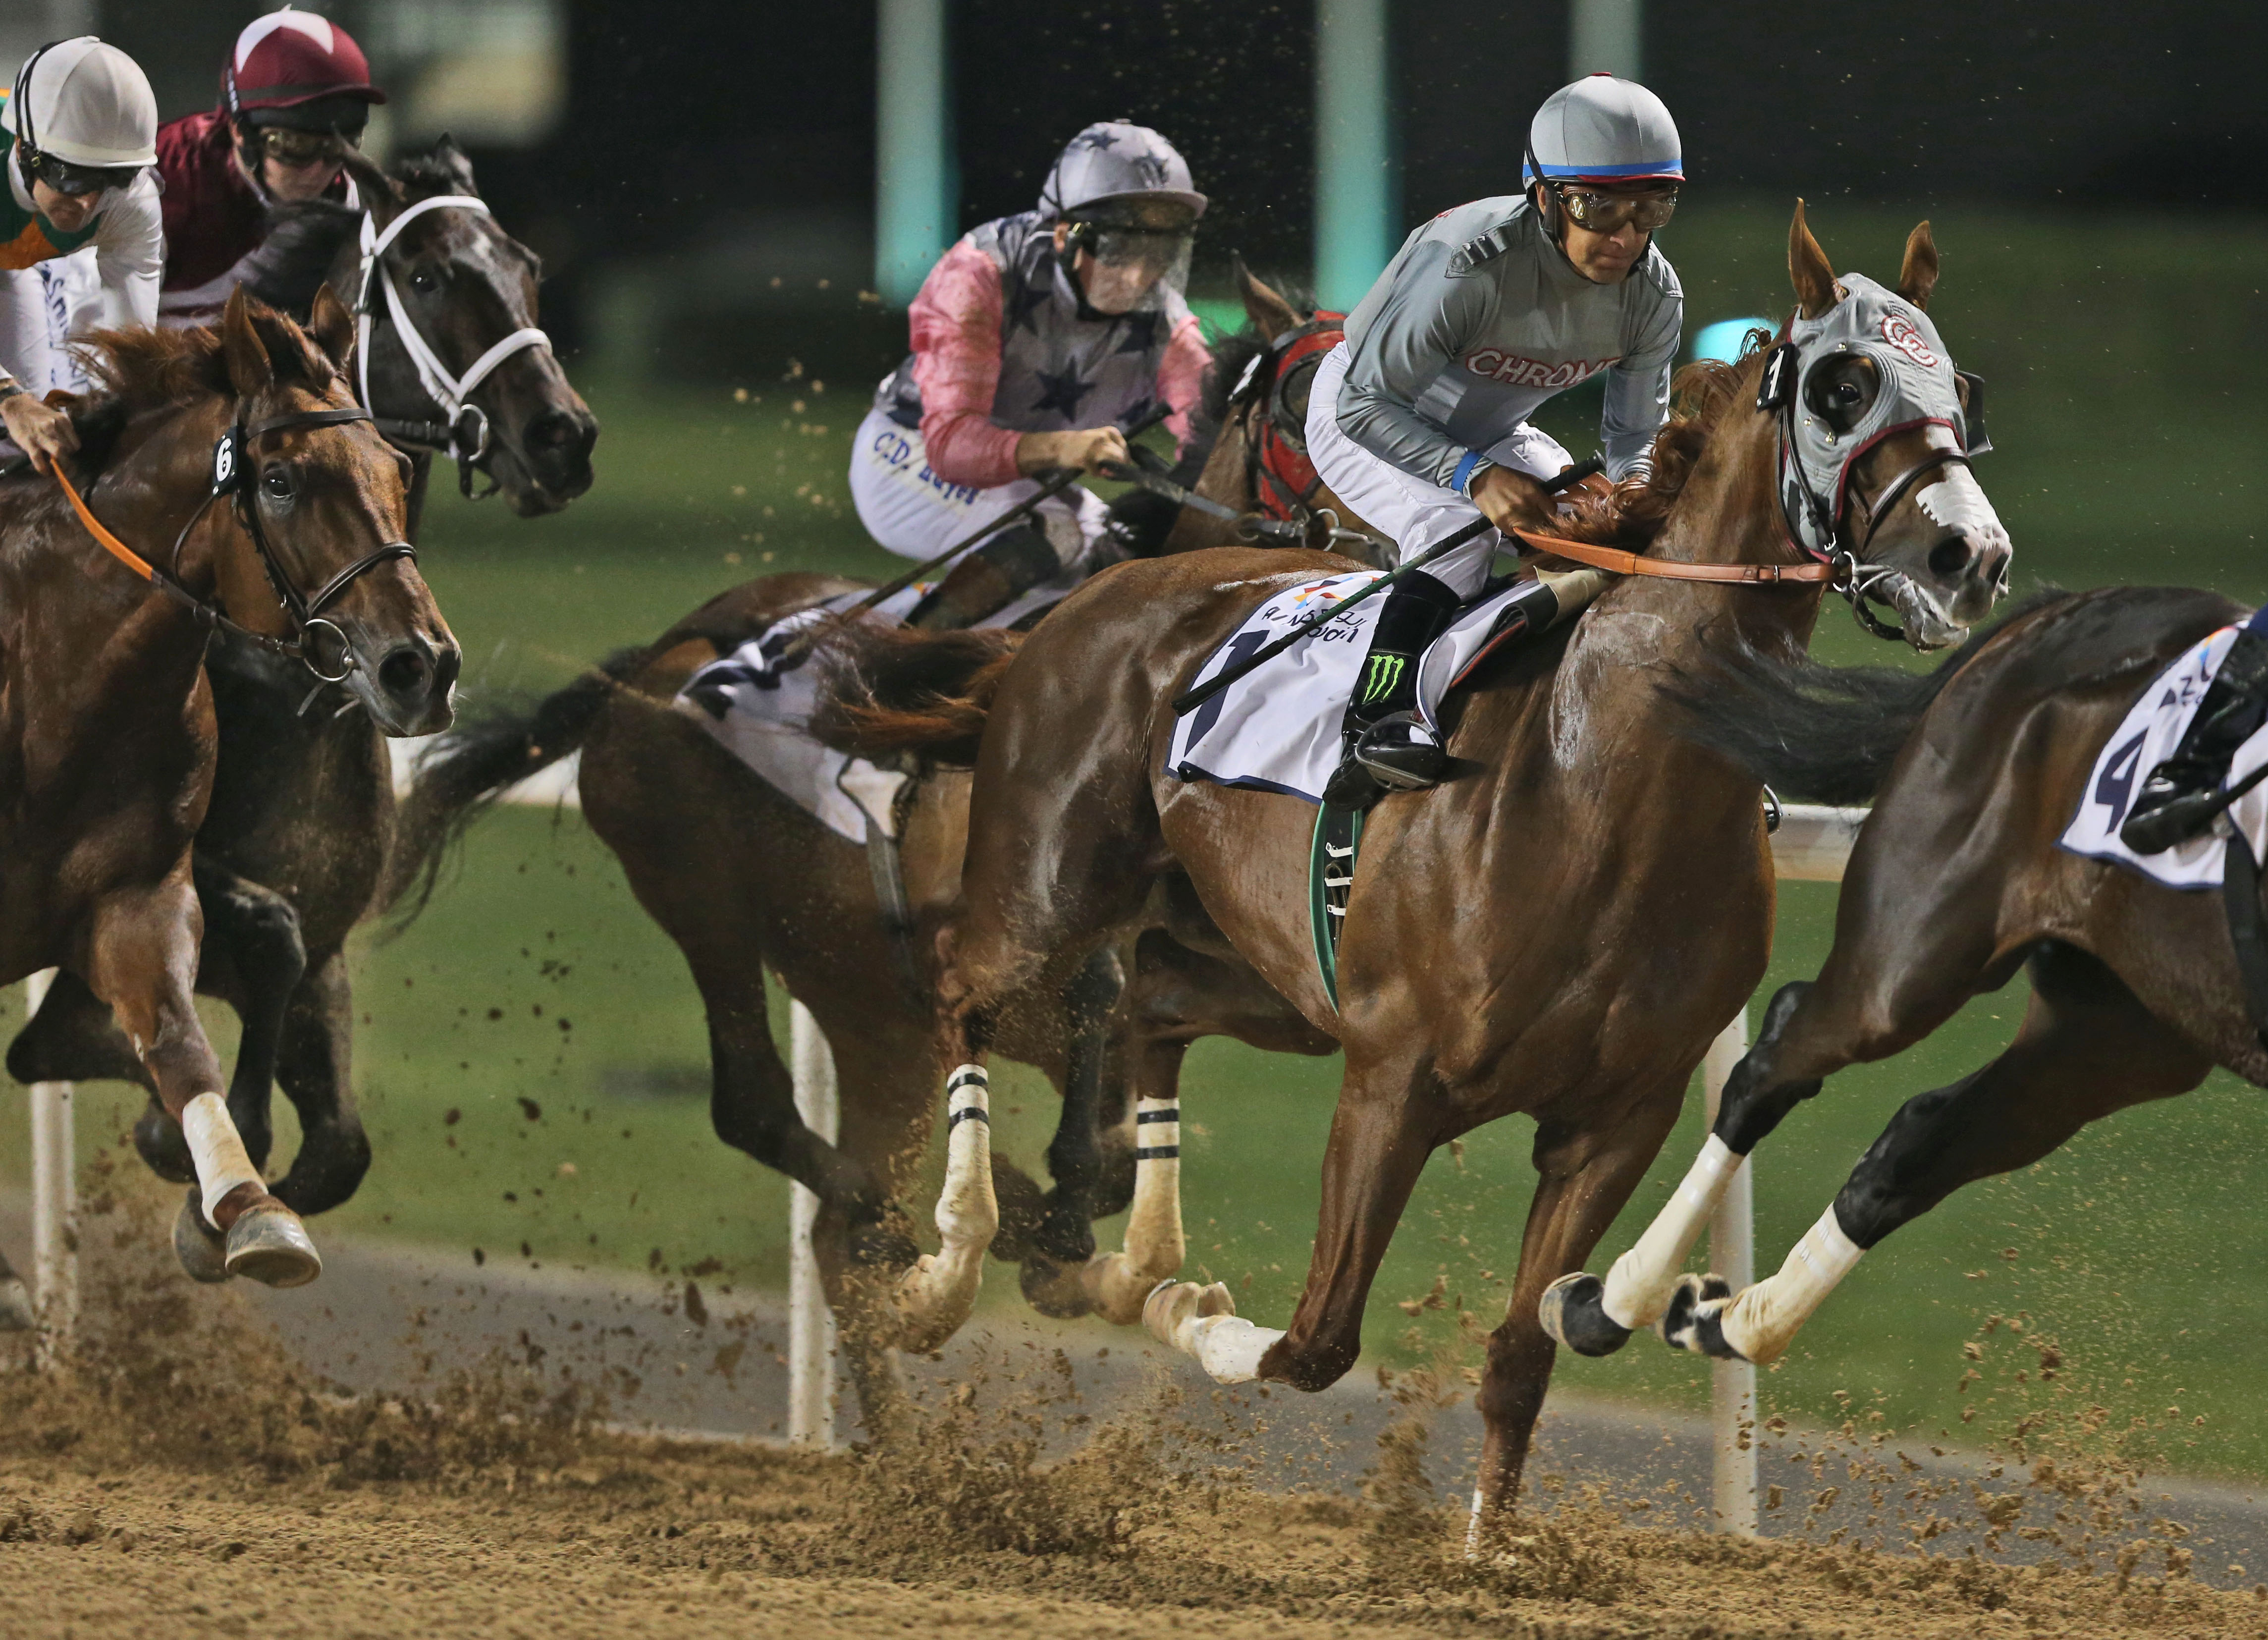 California Chrome of the U.S., ridden by Victor Espinoza, races ahead of El Tren of Ireland during a U.S.$ 150,000 price money race at the Meydan Racecourse in Dubai, United Arab Emirates, Thursday, Feb. 25, 2016. (AP Photo/Kamran Jebreili)